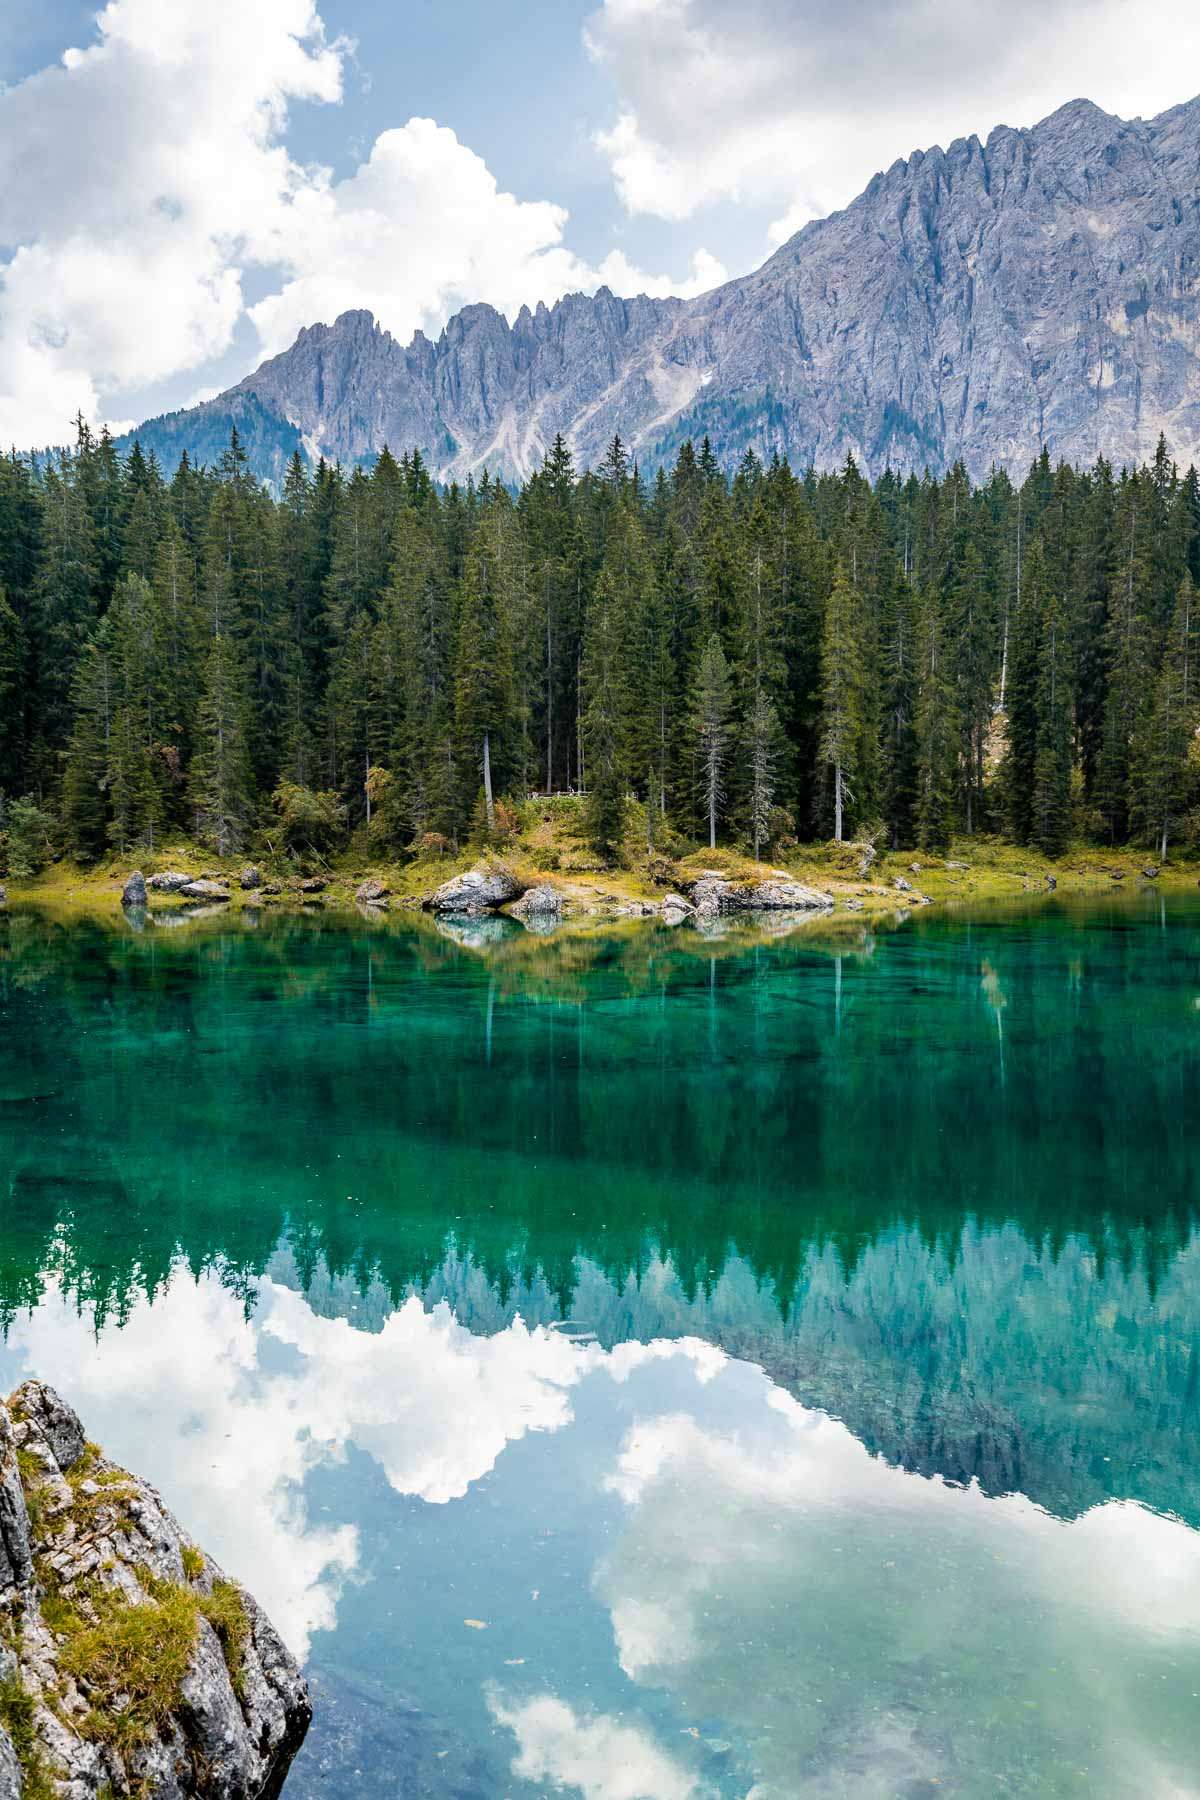 Reflections at Lago di Carezza, one of the most beautiful lakes in the Dolomites